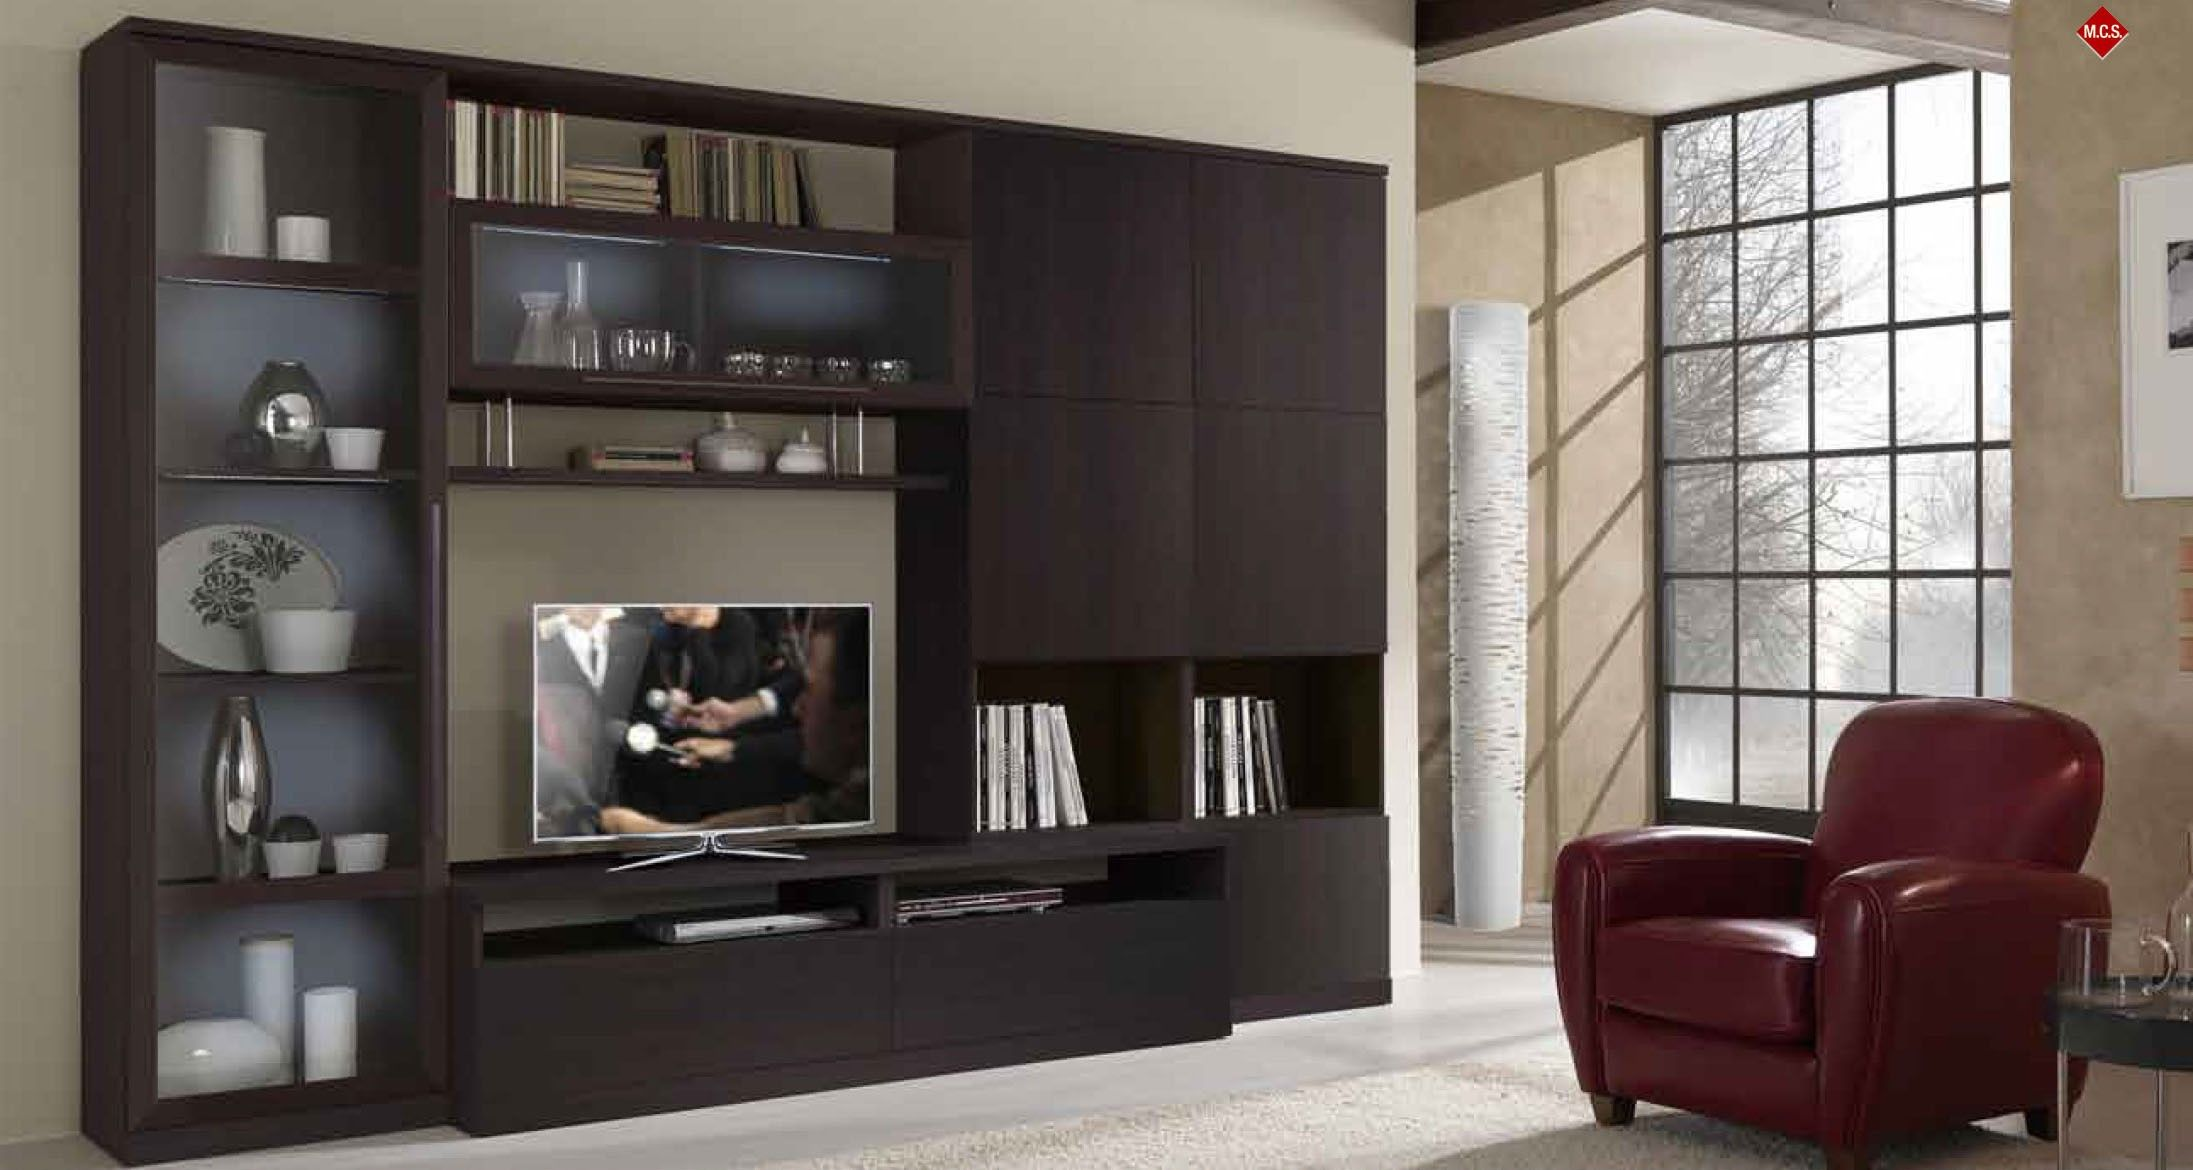 home built in bar and wall unit ideas magnificent living room contemporary stylish modern design - Designer Wall Units For Living Room